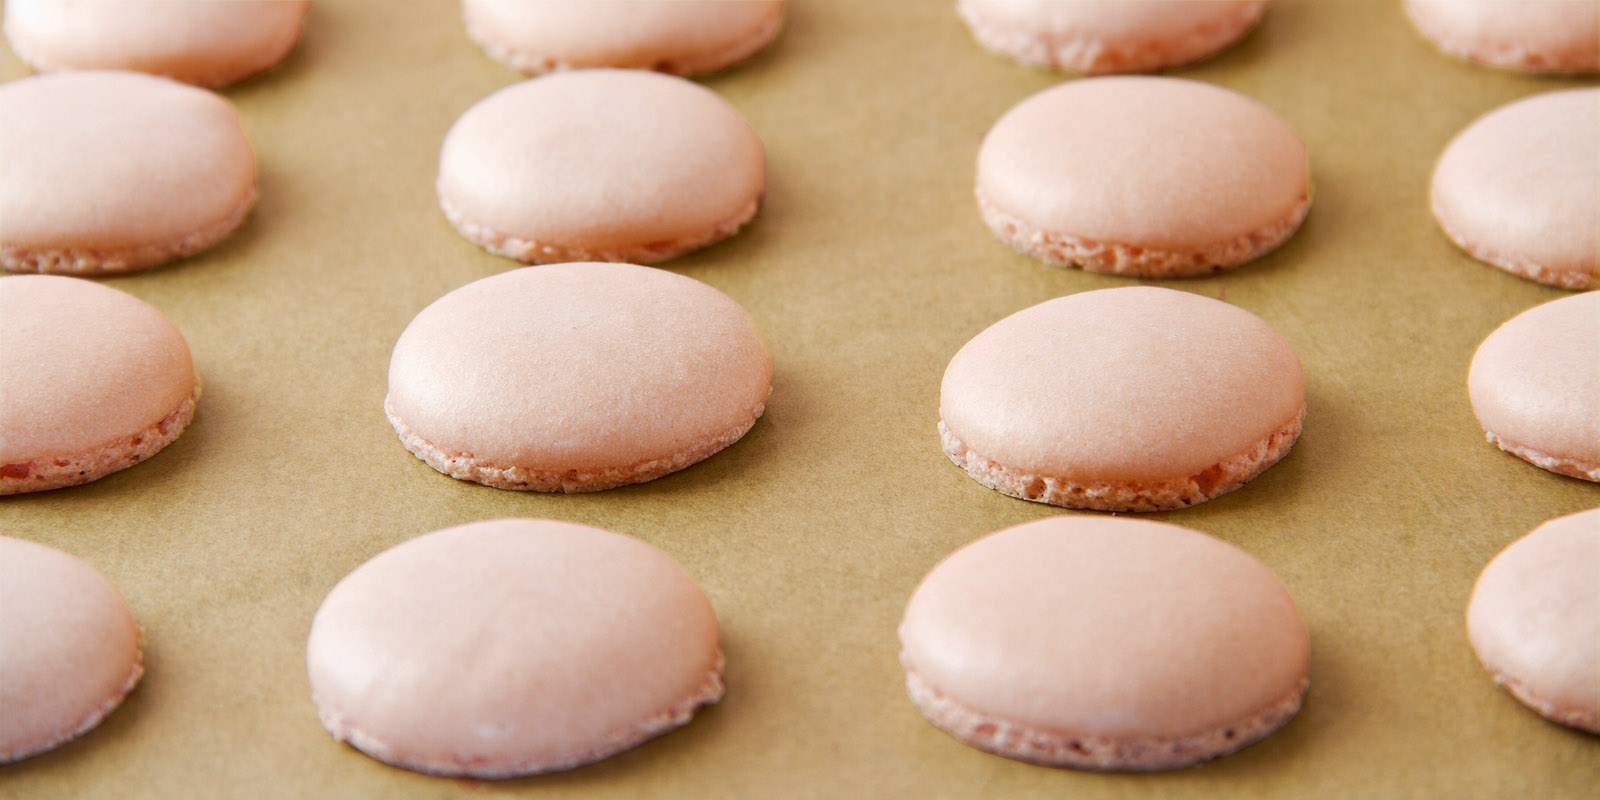 French macaron shells (pronounced macaroon a popular buttercream filled meringue type cookie or biscuit) on baking sheet lined with baking parchment paper.